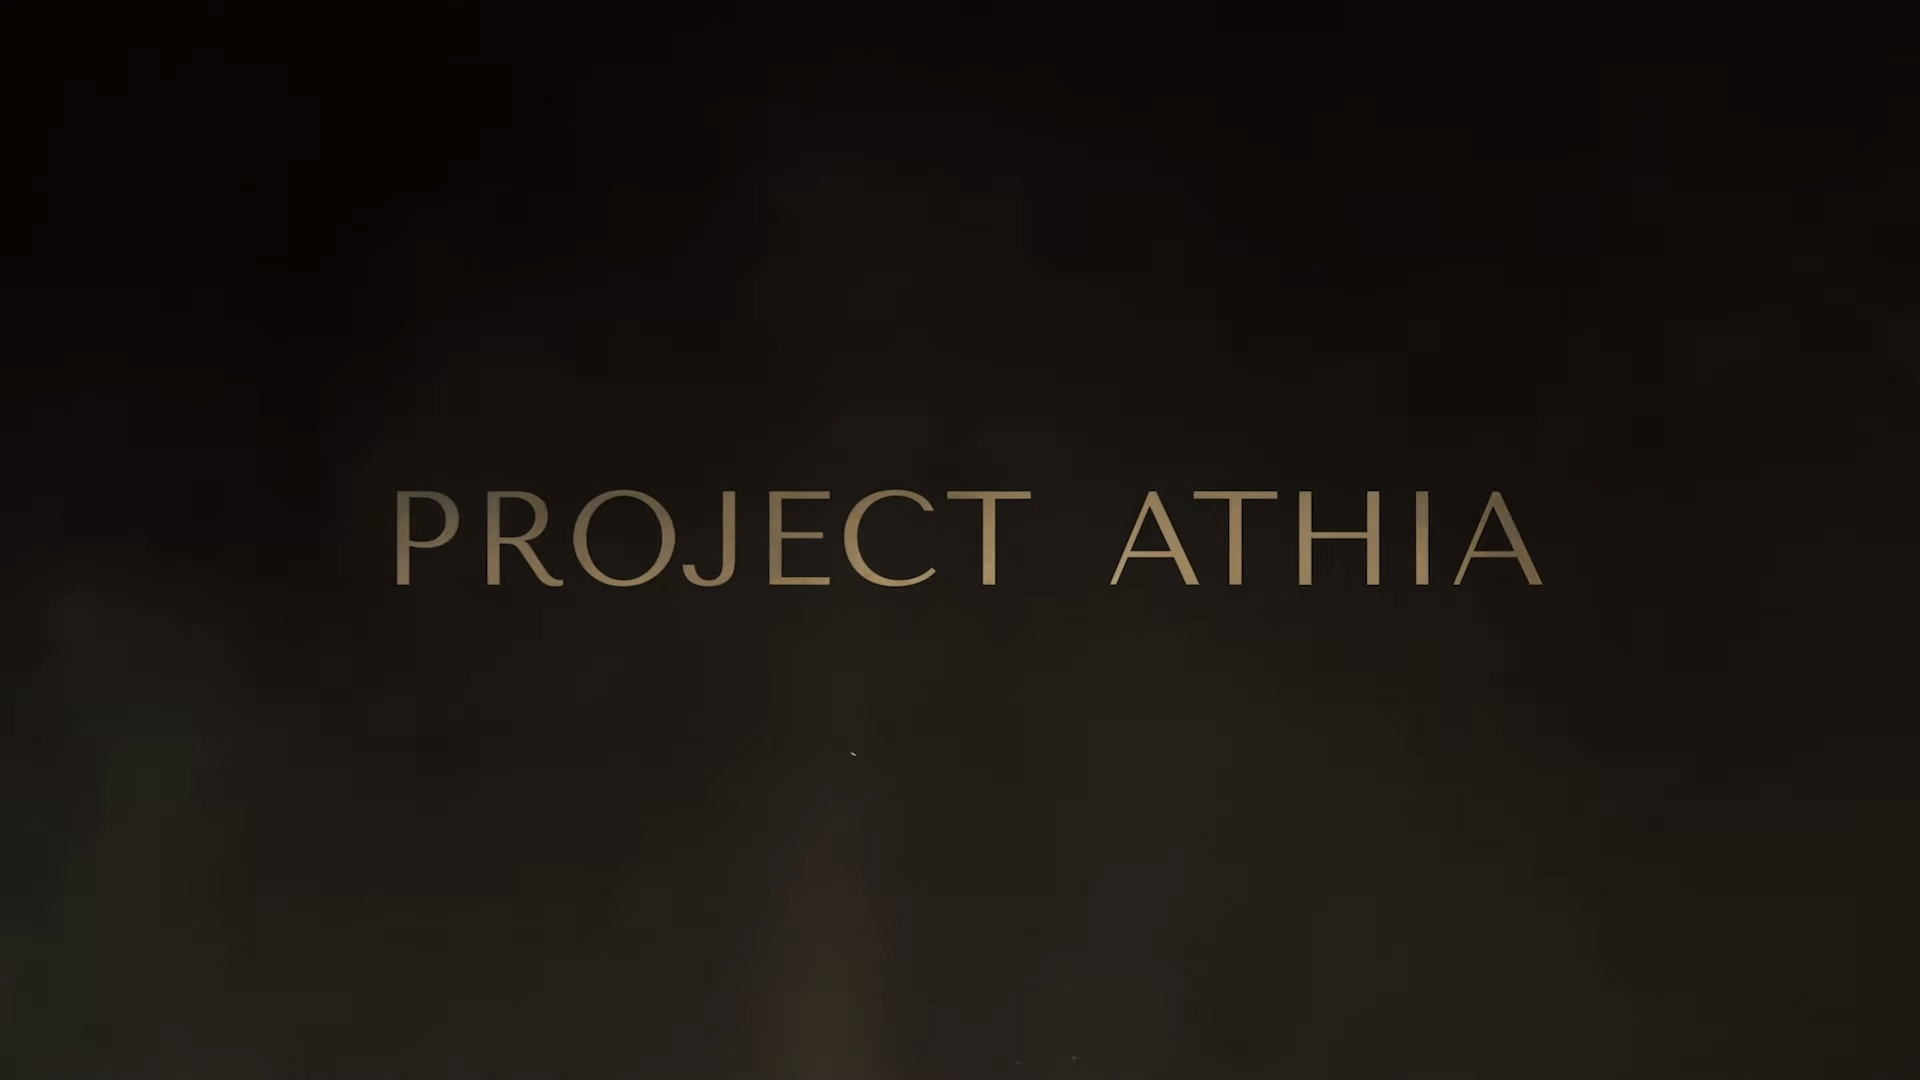 project-athia_4a2a9.jpg